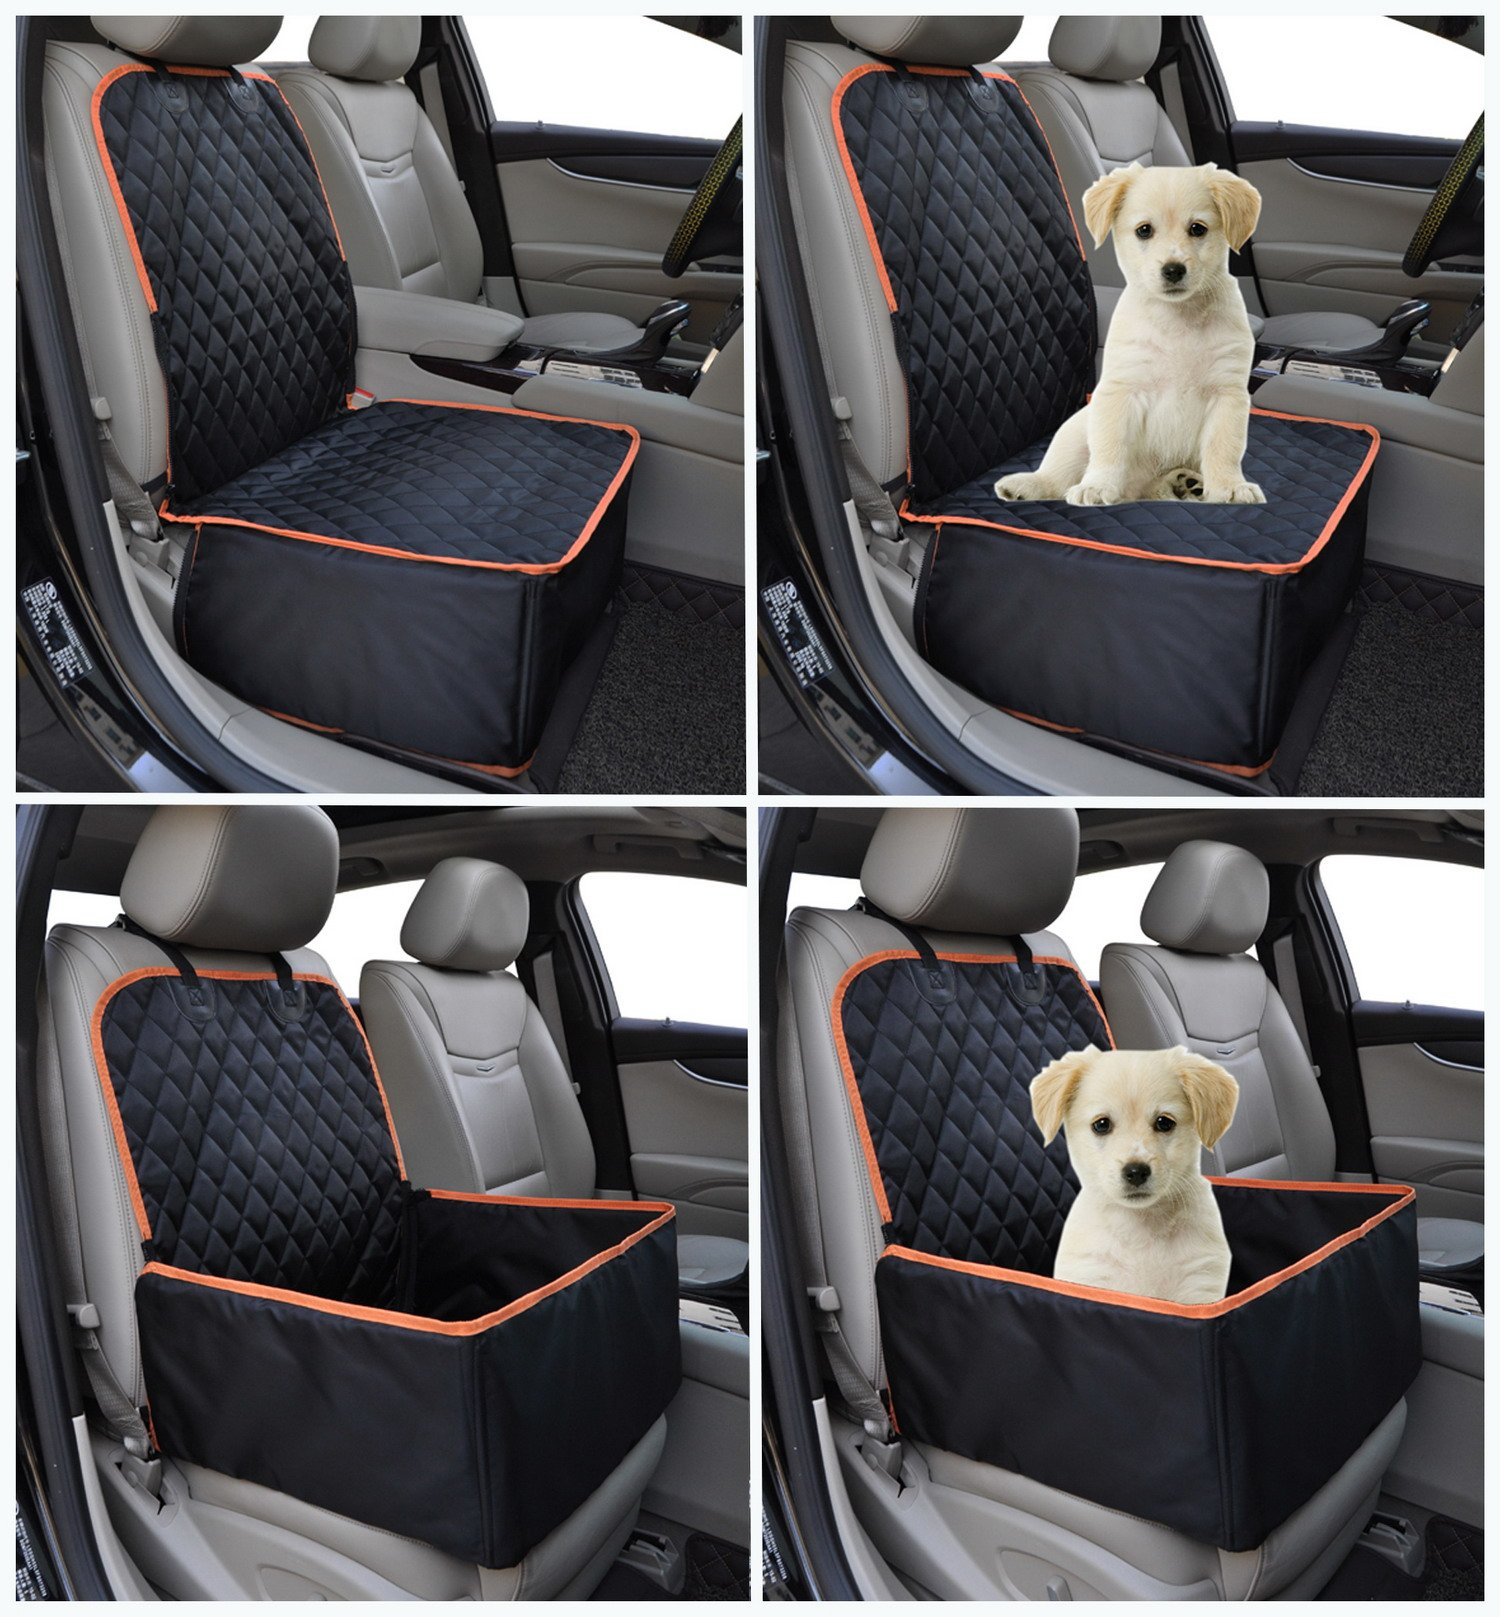 Pet Front Seat Cover for Cars Waterproof Dog Seat Cover Dog Seat Protector with Safe Seat Belt for All Cars, Trucks & SUVs Black